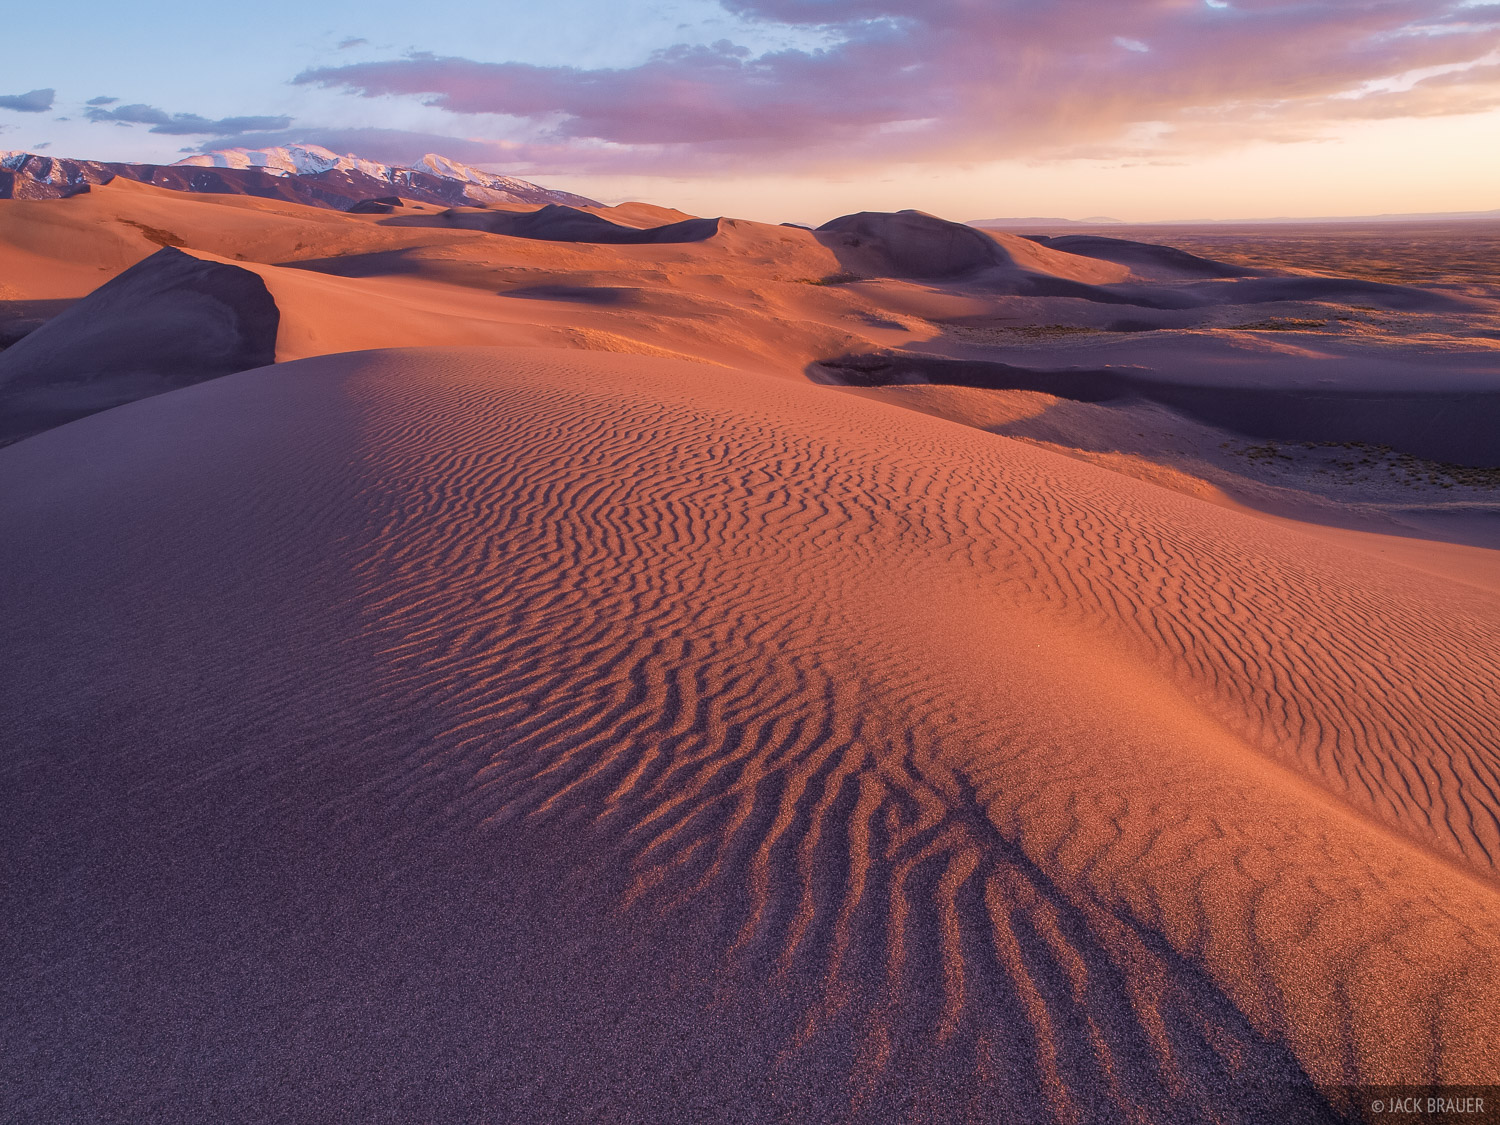 Sunset light illuminates the dunes along the remote western portion of the Great Sand Dunes National Park.